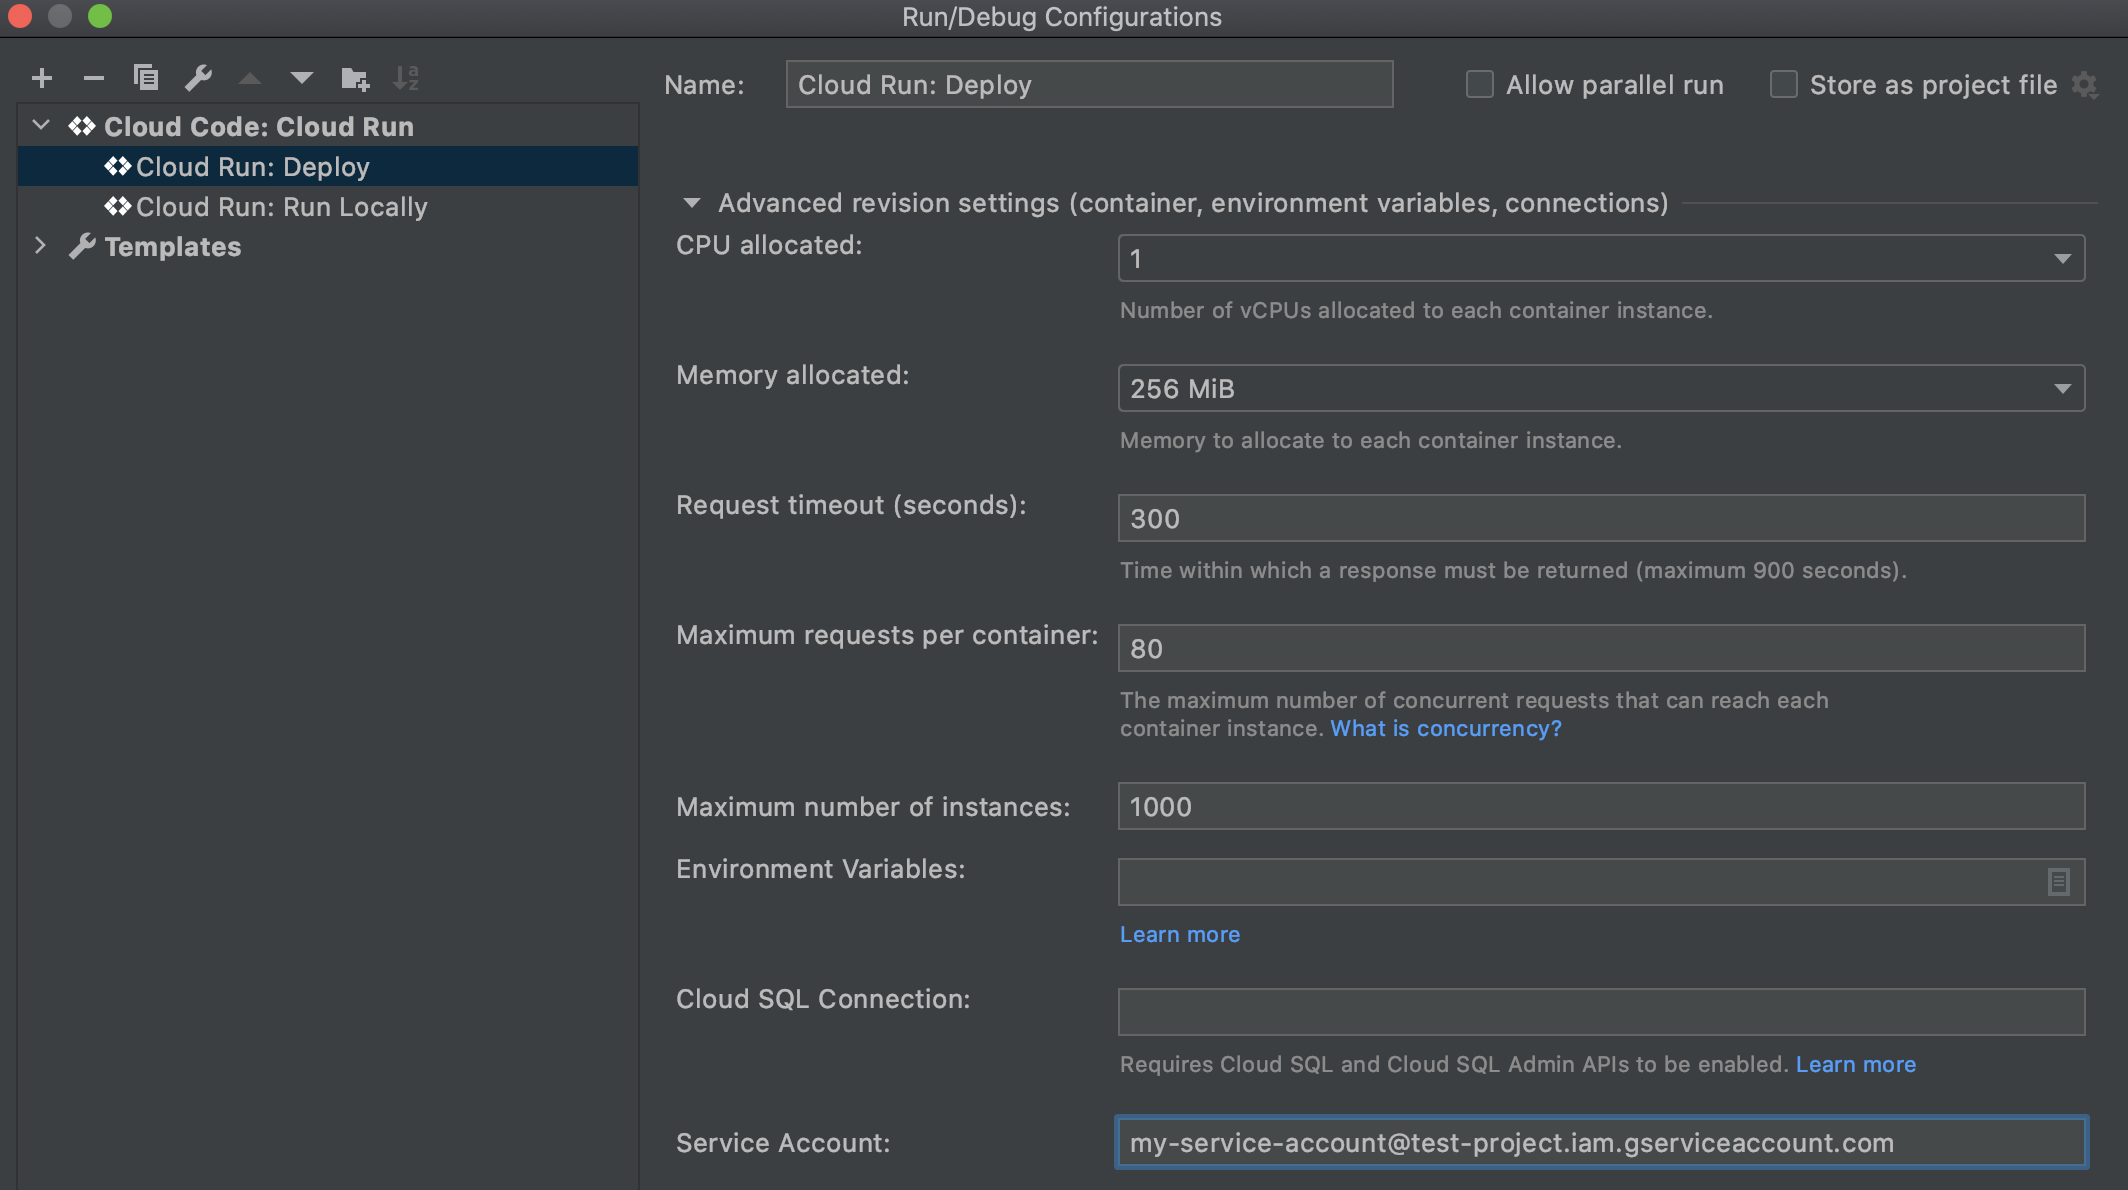 Advanced revision settings section expanded in Cloud Run: Deploy and Service Account field filled in with service account name of the format service-account-name@project-name.iam.gserviceaccount.com